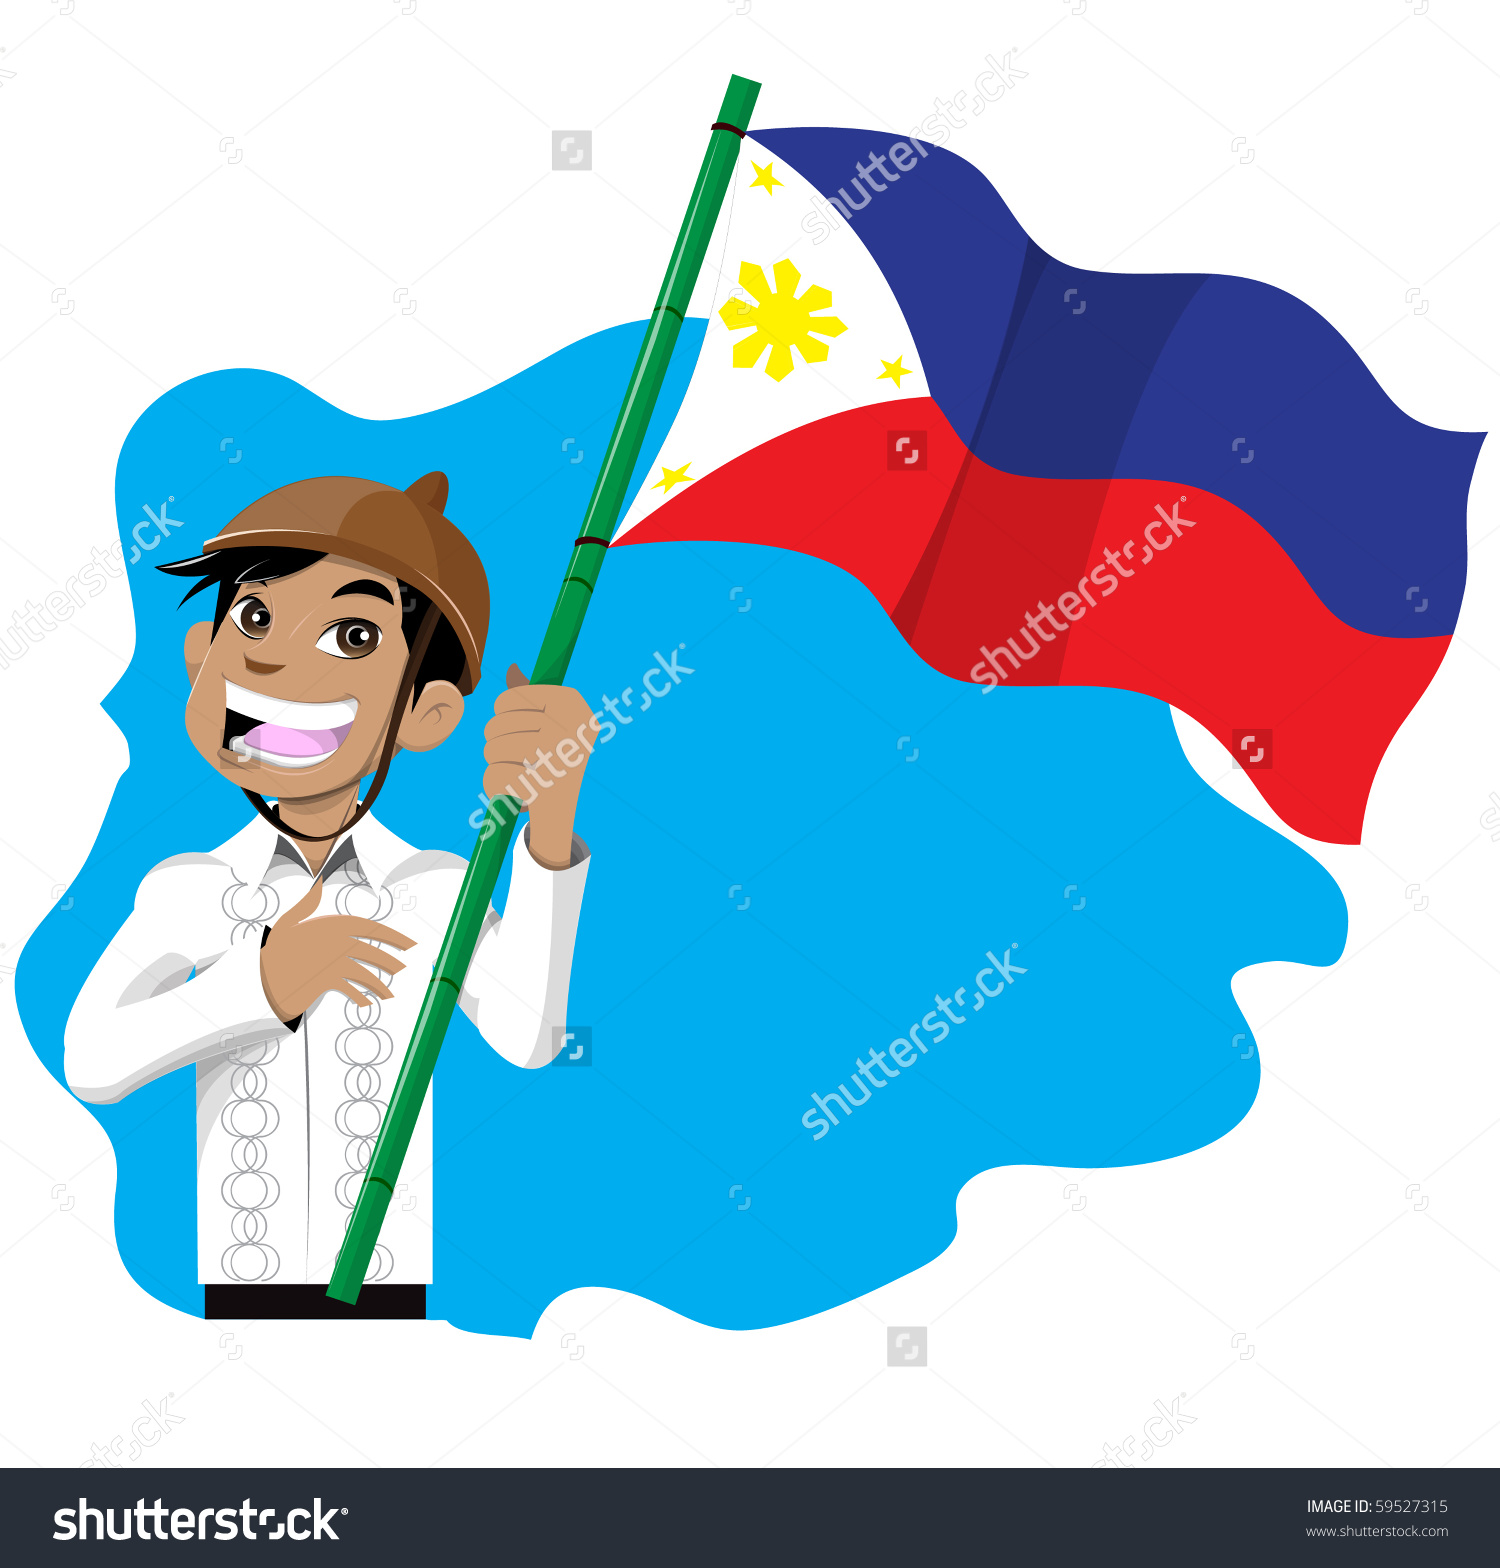 Ceremony clipart philippine flag Collection flag collection clipart holding